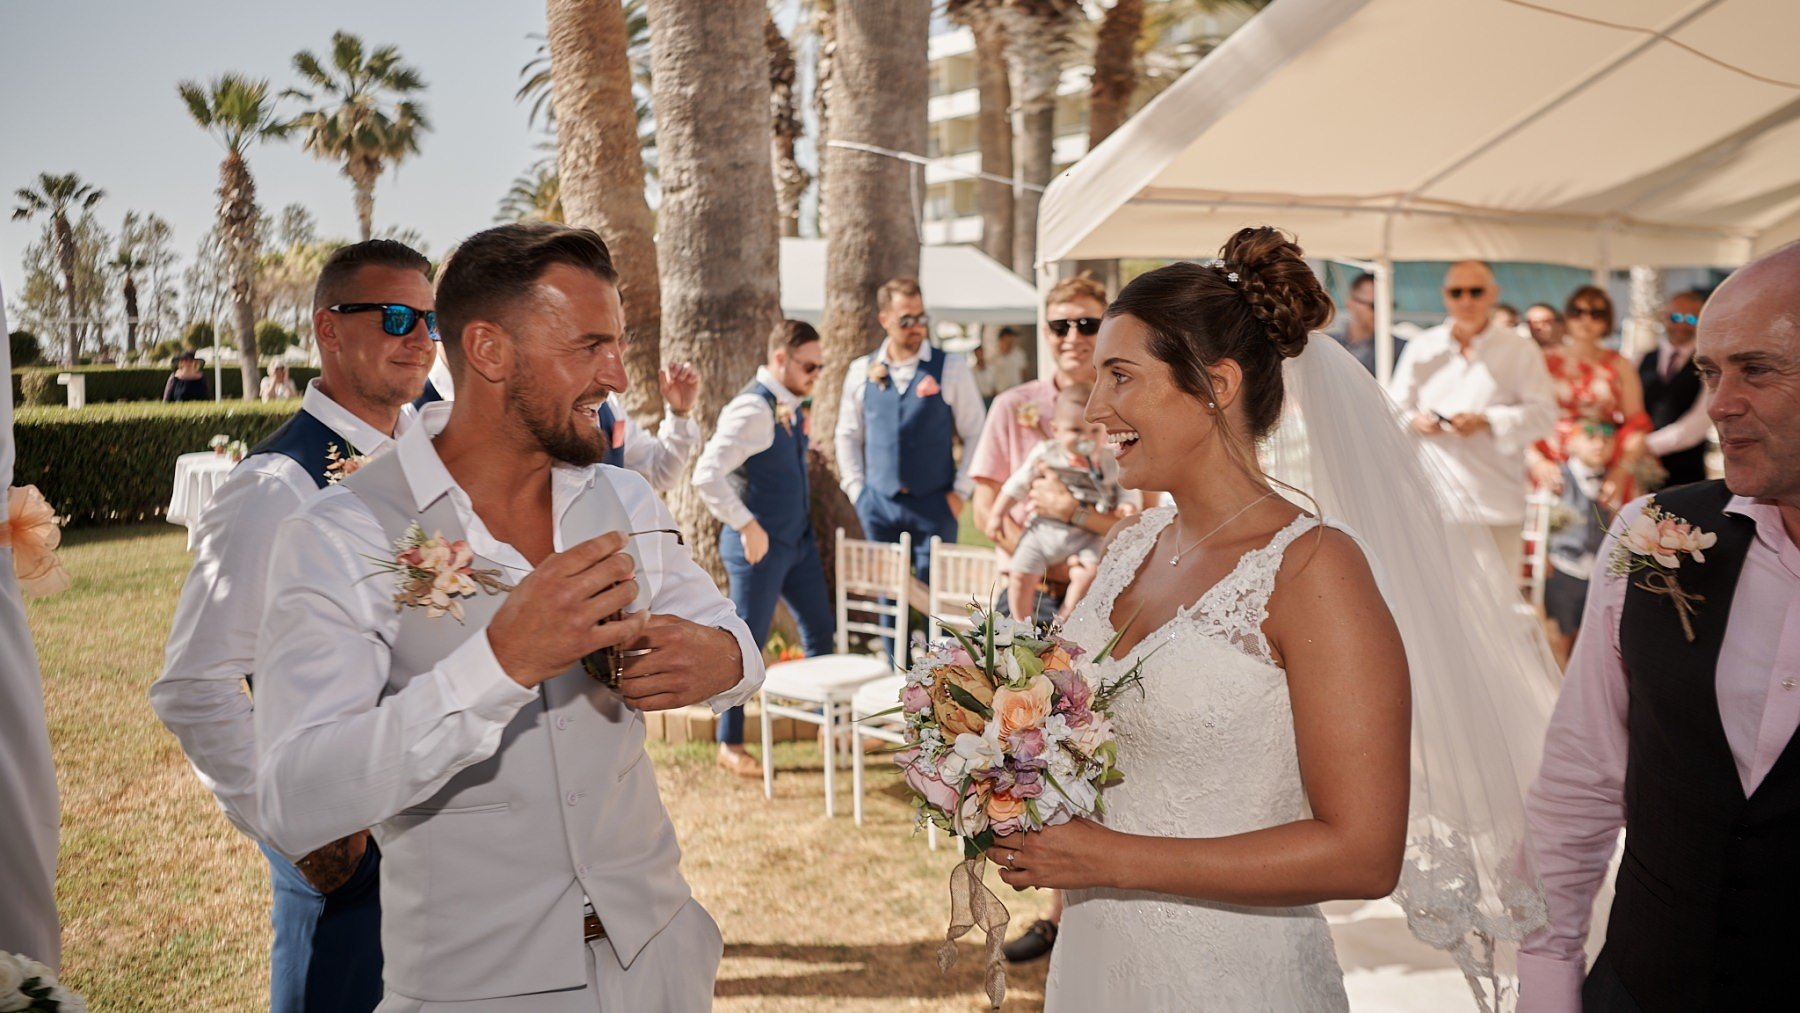 The Wedding of Hannah and Ross at the Louis Imperial Beach Hotel in Paphos